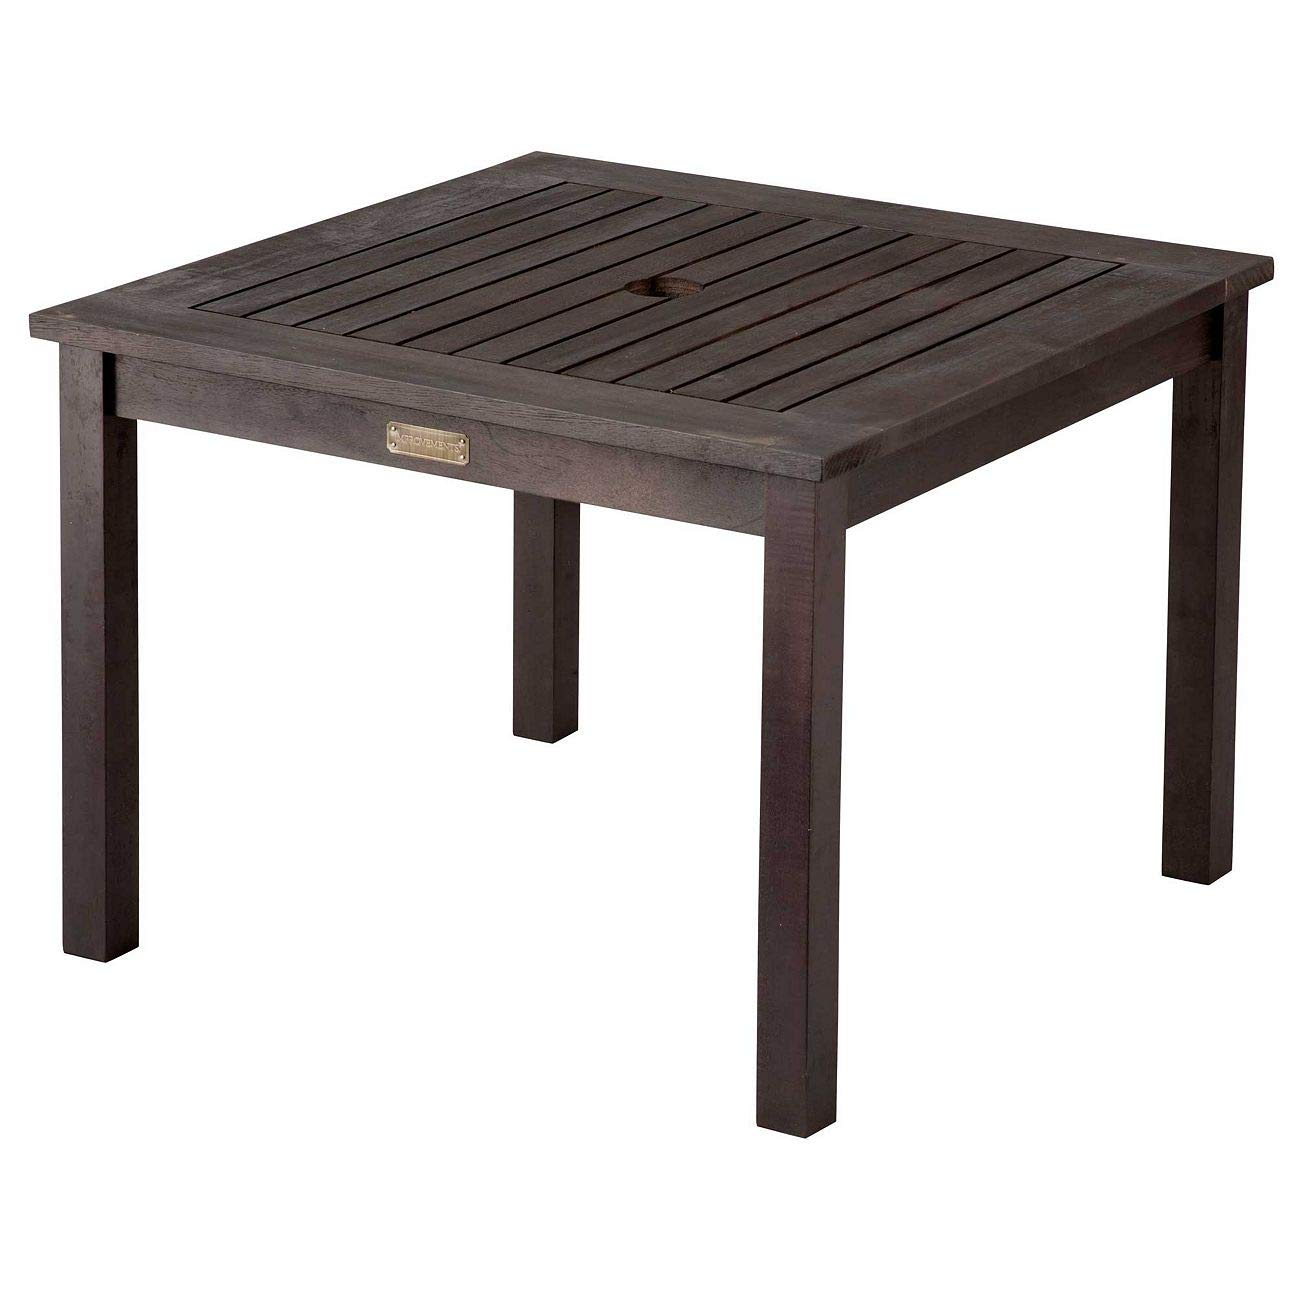 outdoor rustic espresso finish eucalyptus wood umbrella side table end patio pool furniture garden round industrial metal bedside mainstays square accent telephone dark brown